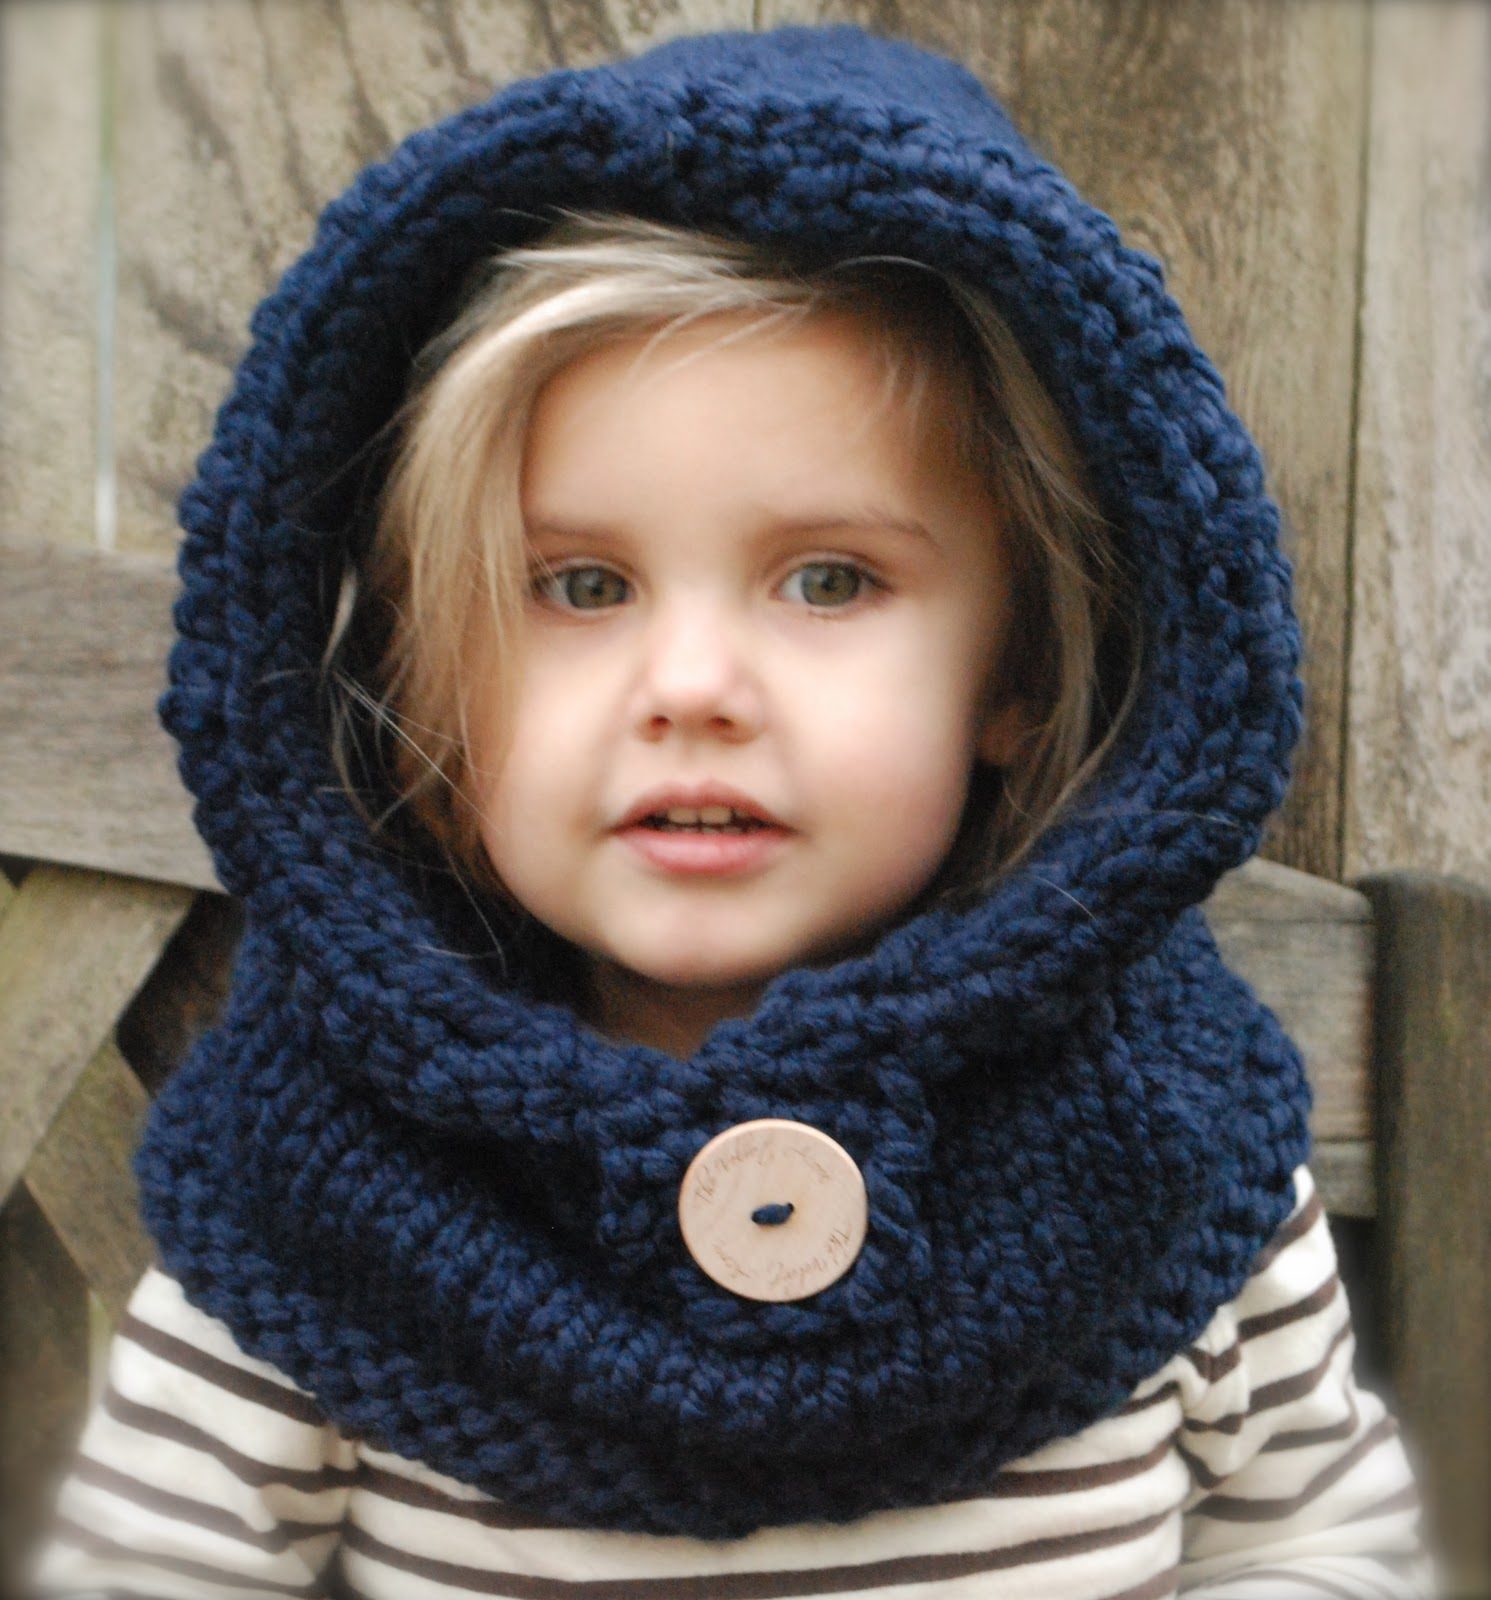 Free Crochet Pattern For Hooded Cowl With Ears : Crochet Hooded Cowl Pattern myideasbedroom.com